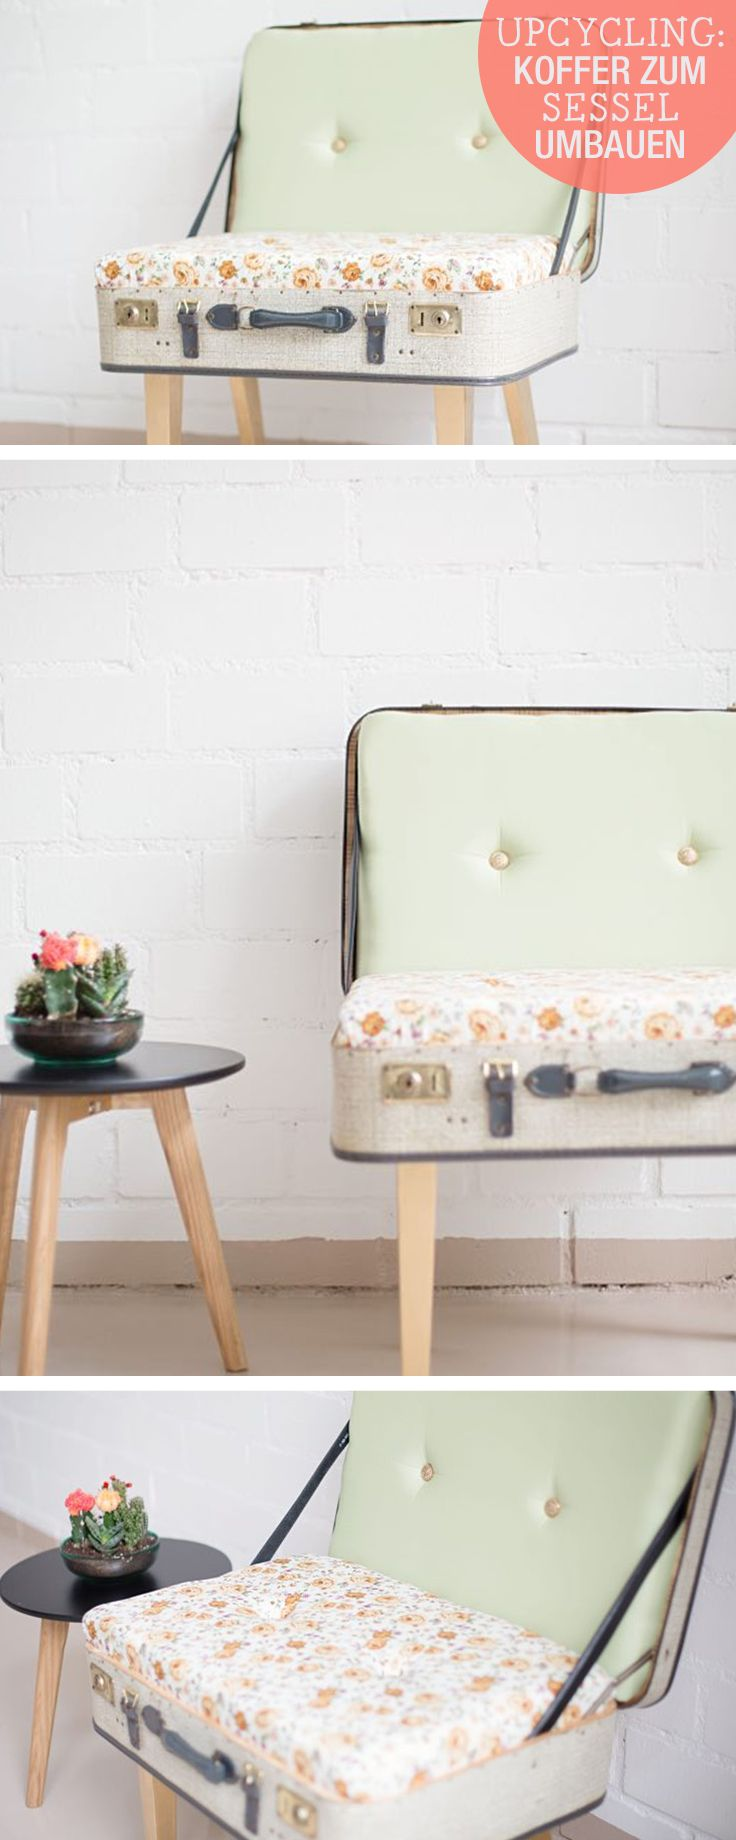 DIY-Anleitung: Sessel aus Koffer bauen, Upcycling / craft idea living: tansform an old suitcase into a chair, recycling via DaWanda.com